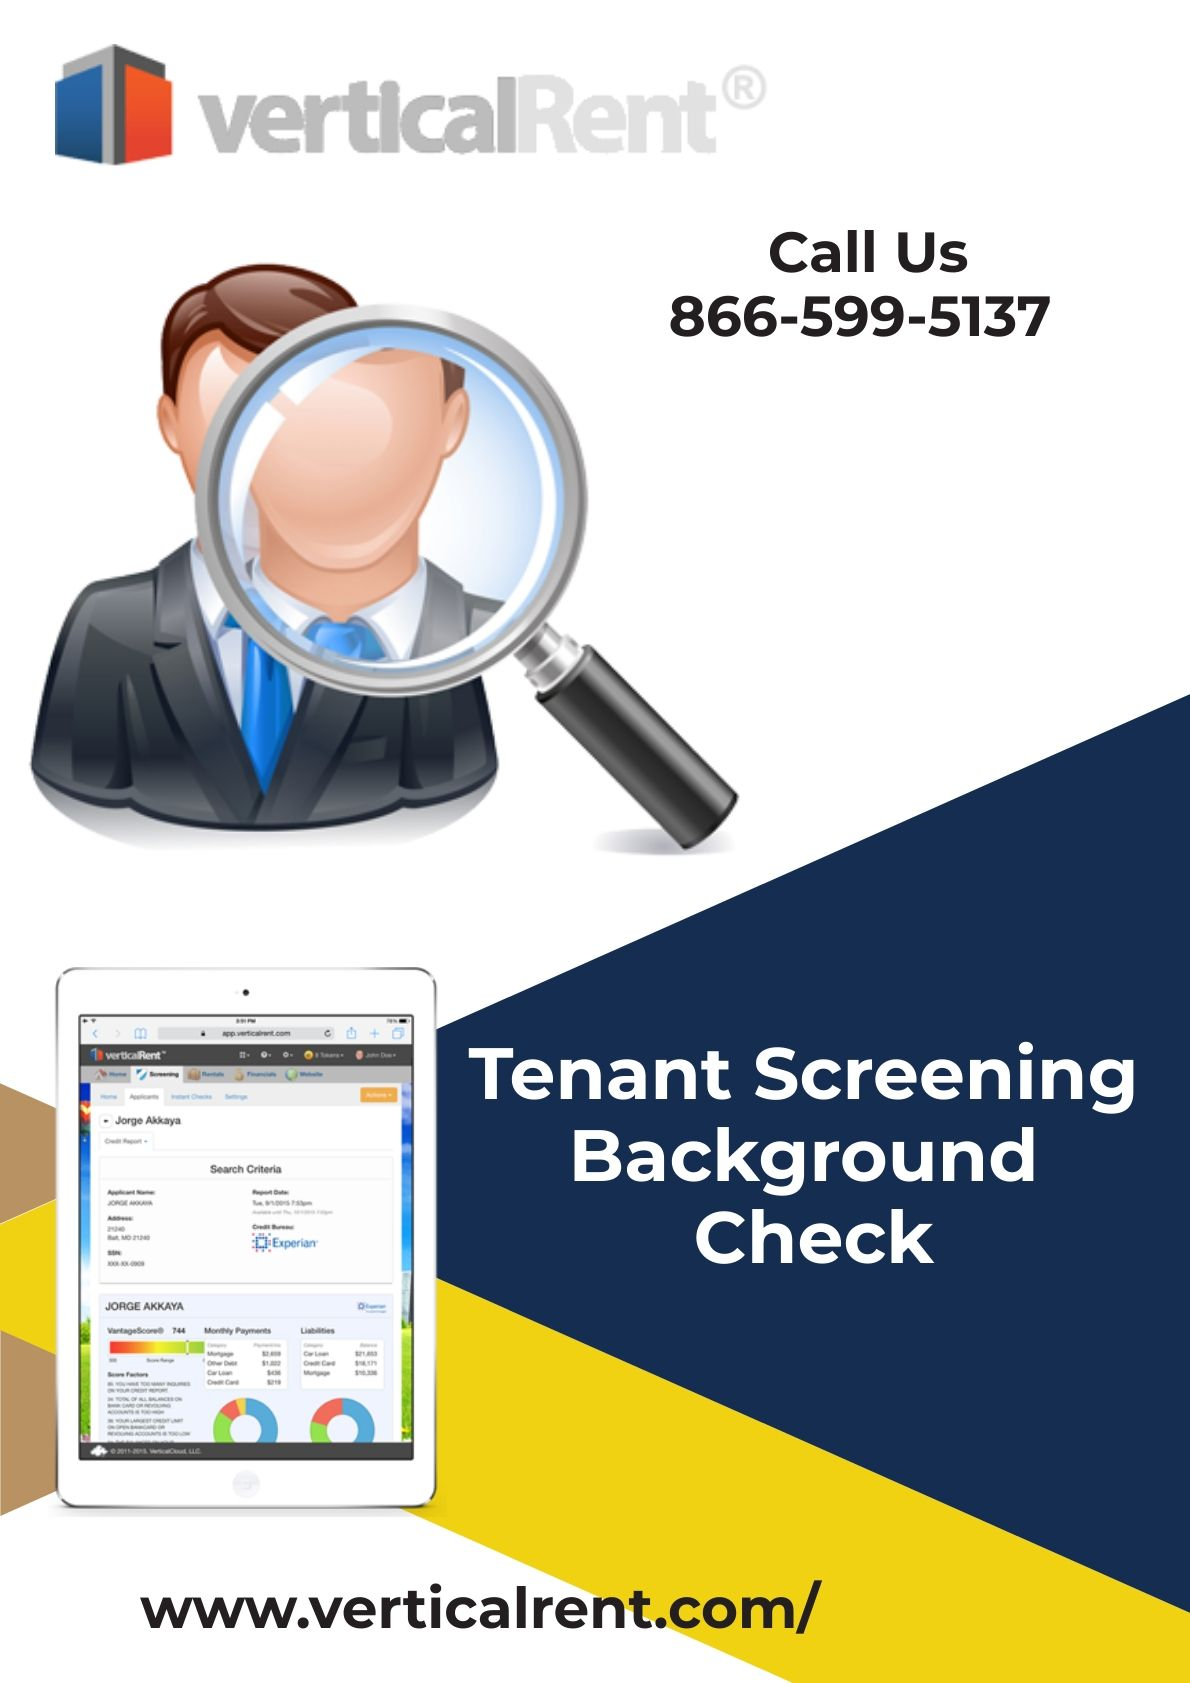 Verticalrent Provides Free Tenant Screening Background Check For